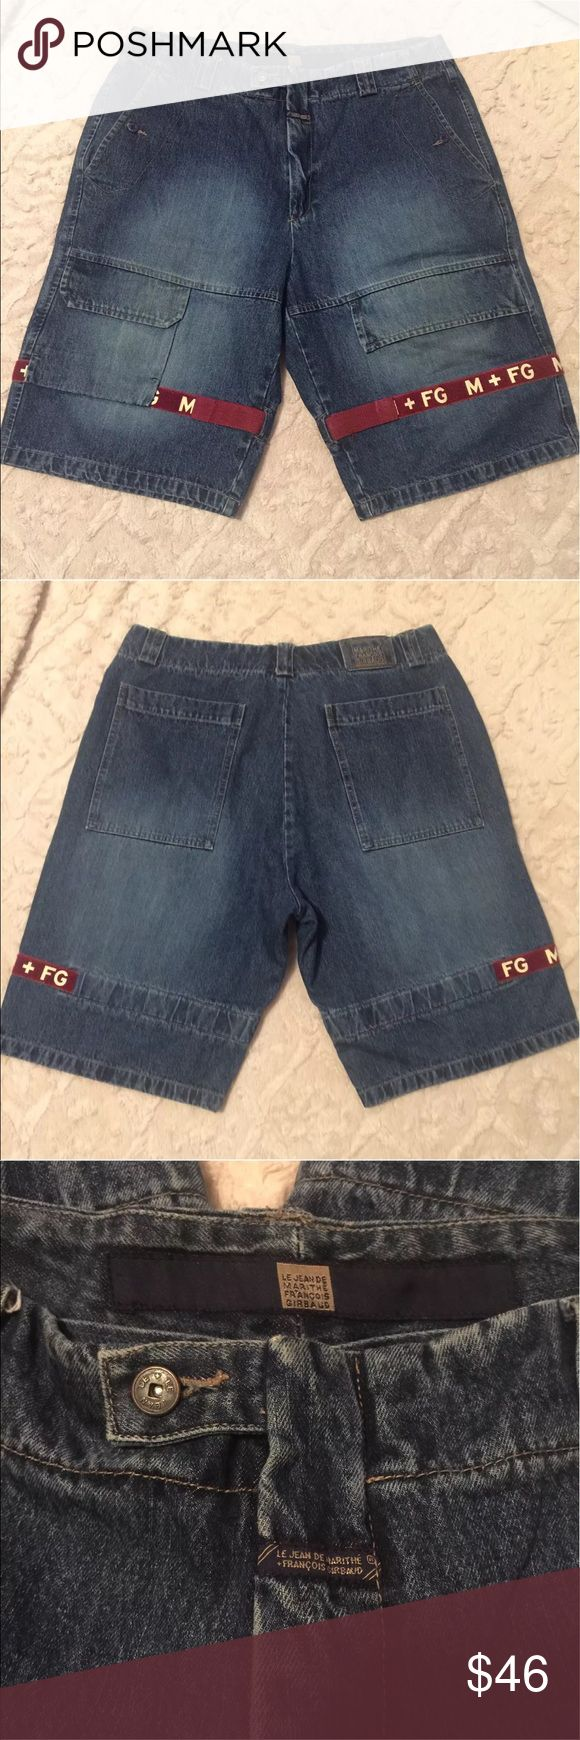 """Marithe Francois Girbaud Shuttle Strap Shorts Good condition, no stains or flaws Material: Cotton Blend Size: 38 Waist 19"""" Length 25 1/2"""" All measurements are taken laying flat and are not doubled. Marithe Francois Girbaud Shorts Jean Shorts"""